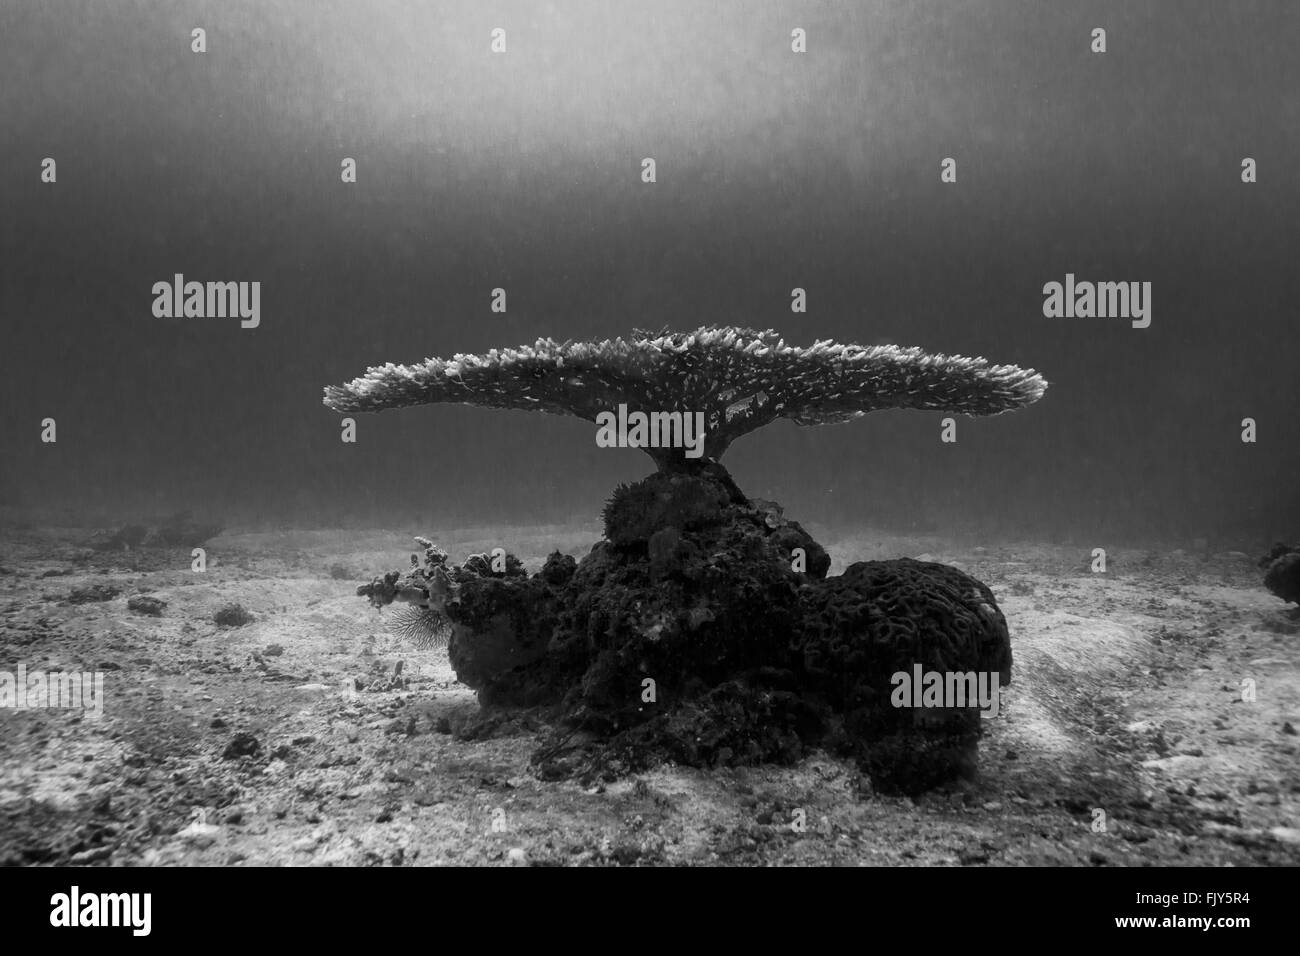 Branching coral displays interestingly like african acacia tree or table with flat top Monochrome - Stock Image